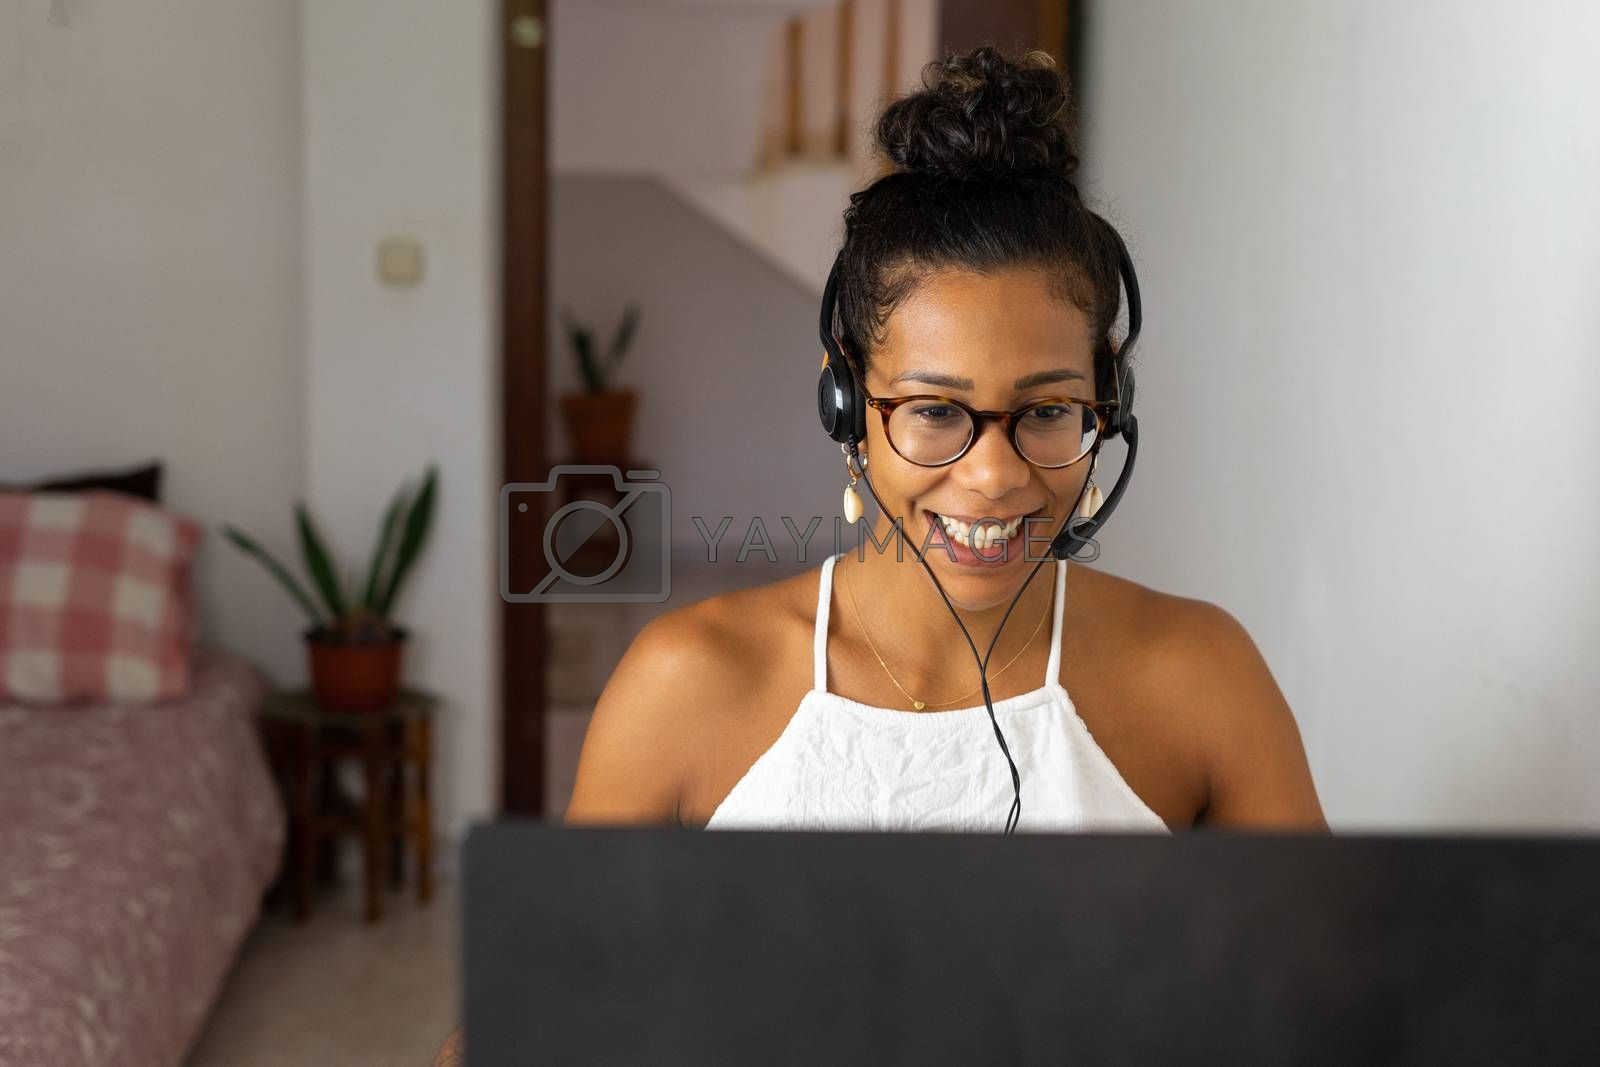 Working brazilian young woman in bedroom. Telemeeting. Video conference. Remote work. Call center home.